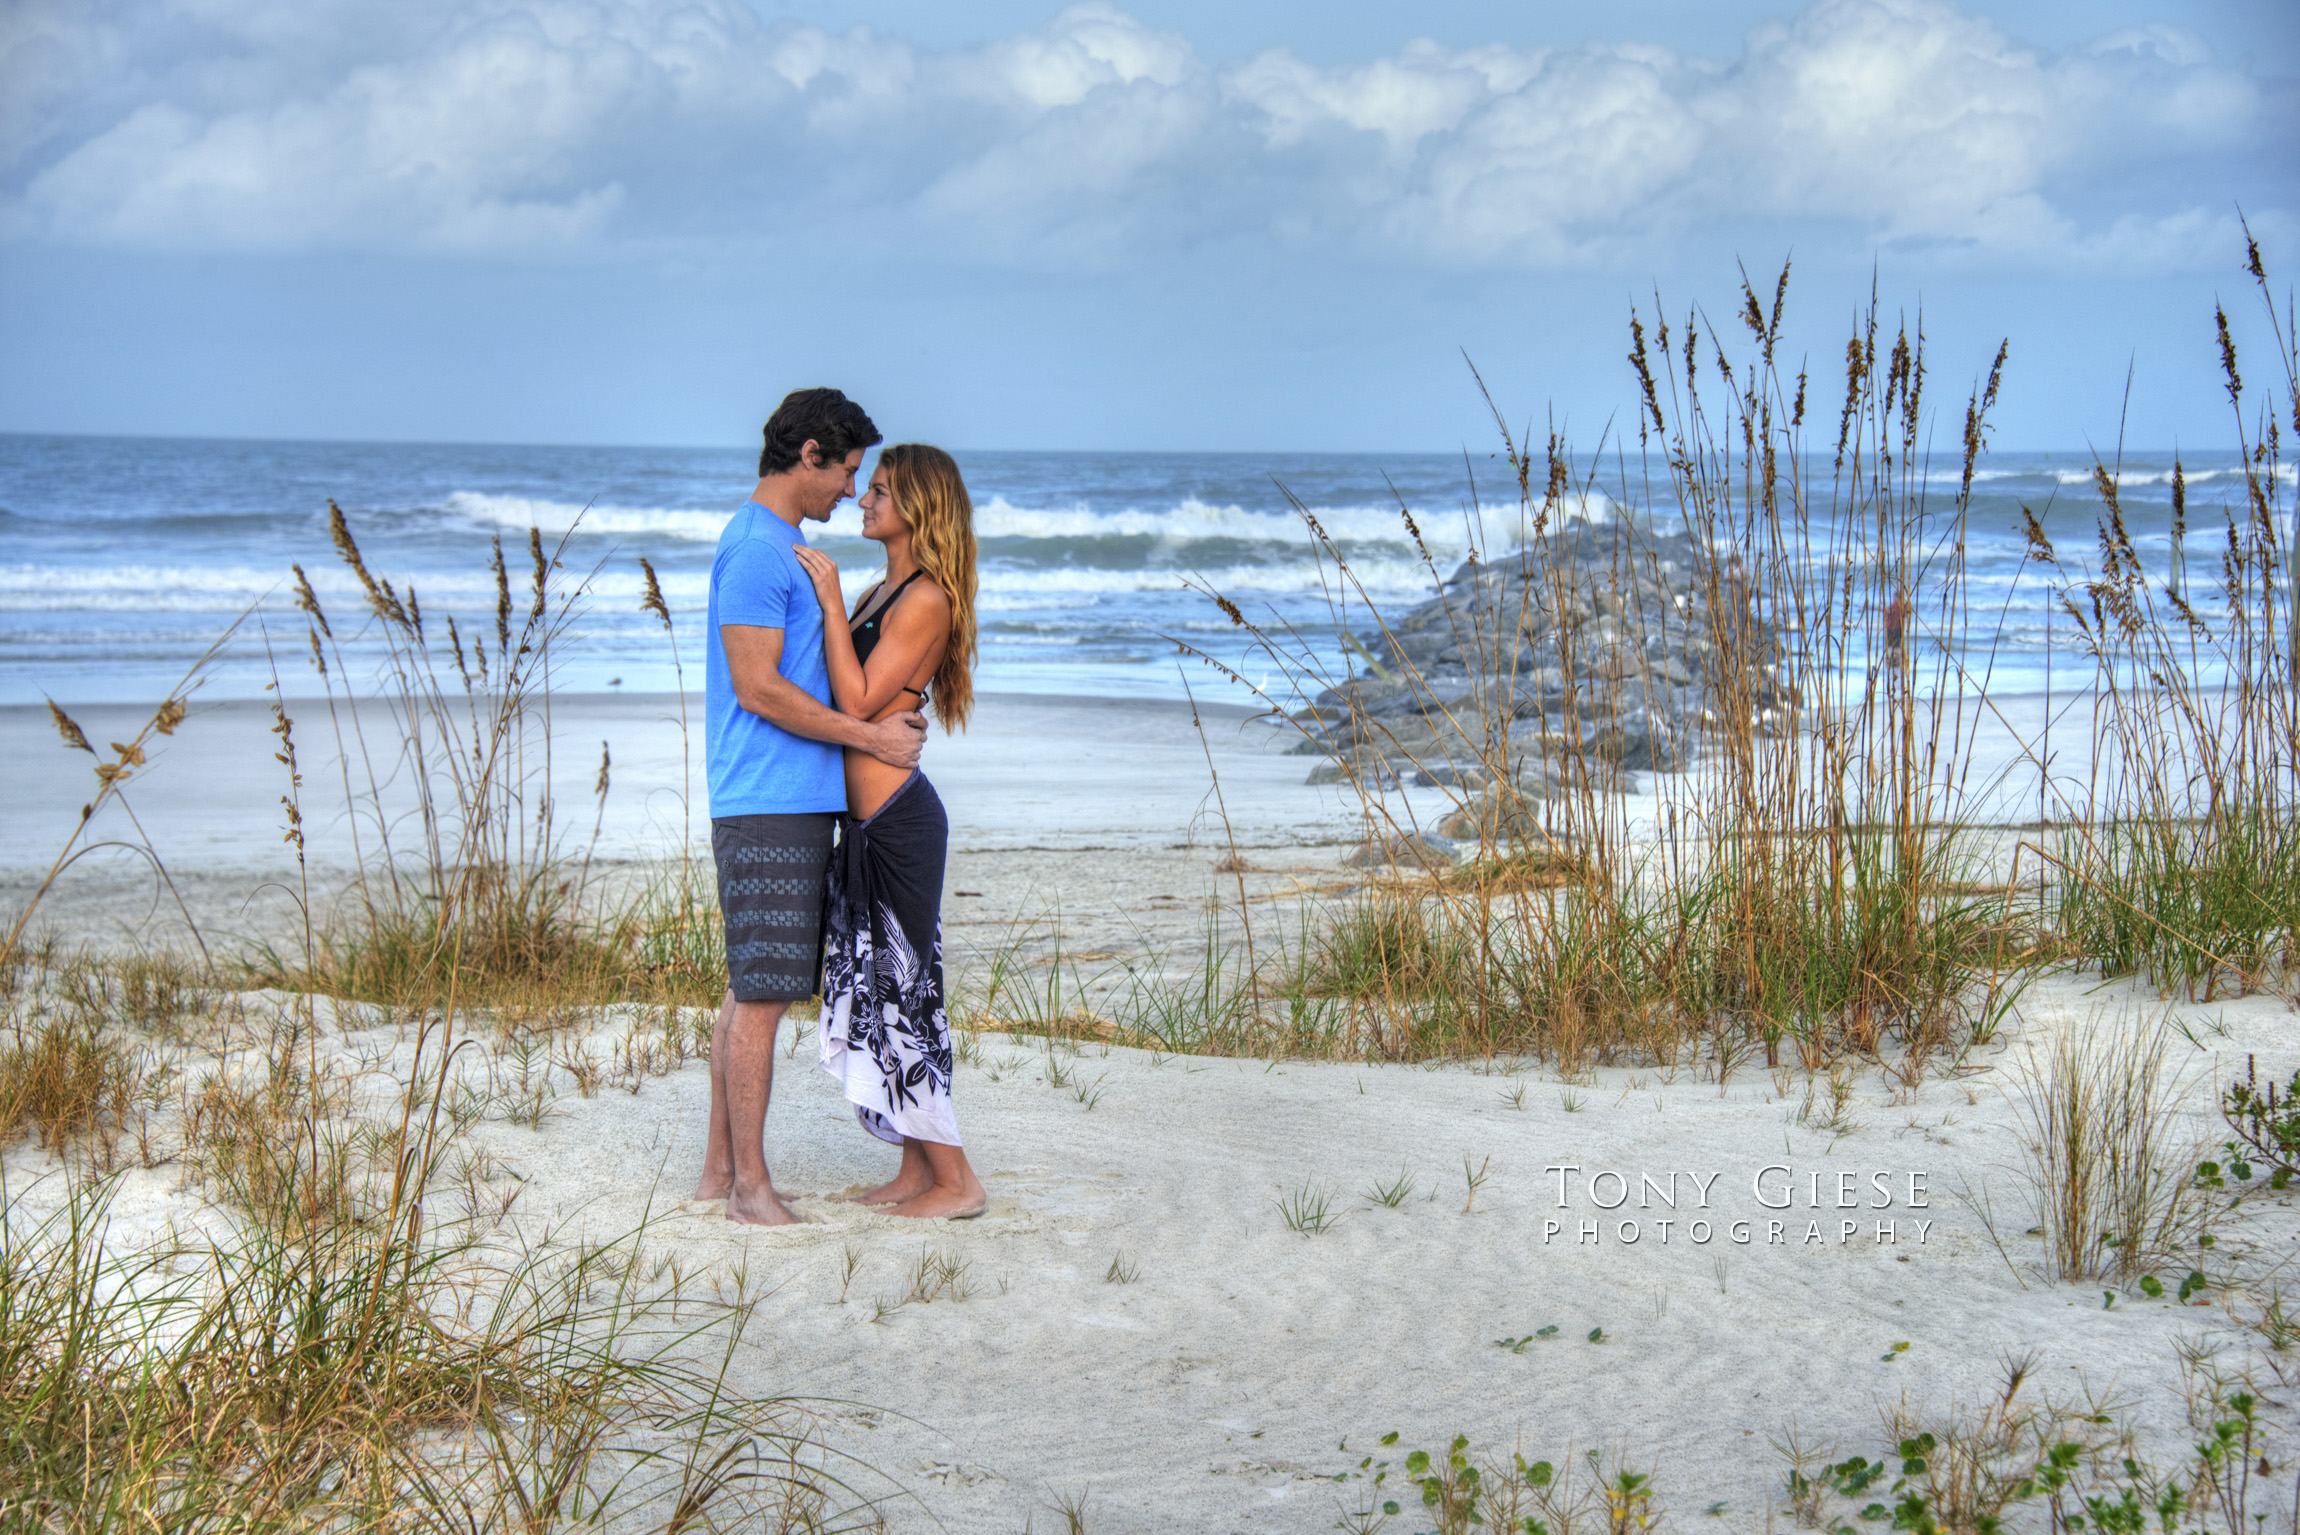 Young couple enjoying New Smyrna Beach, Florida. Photo by Tony Giese Photography